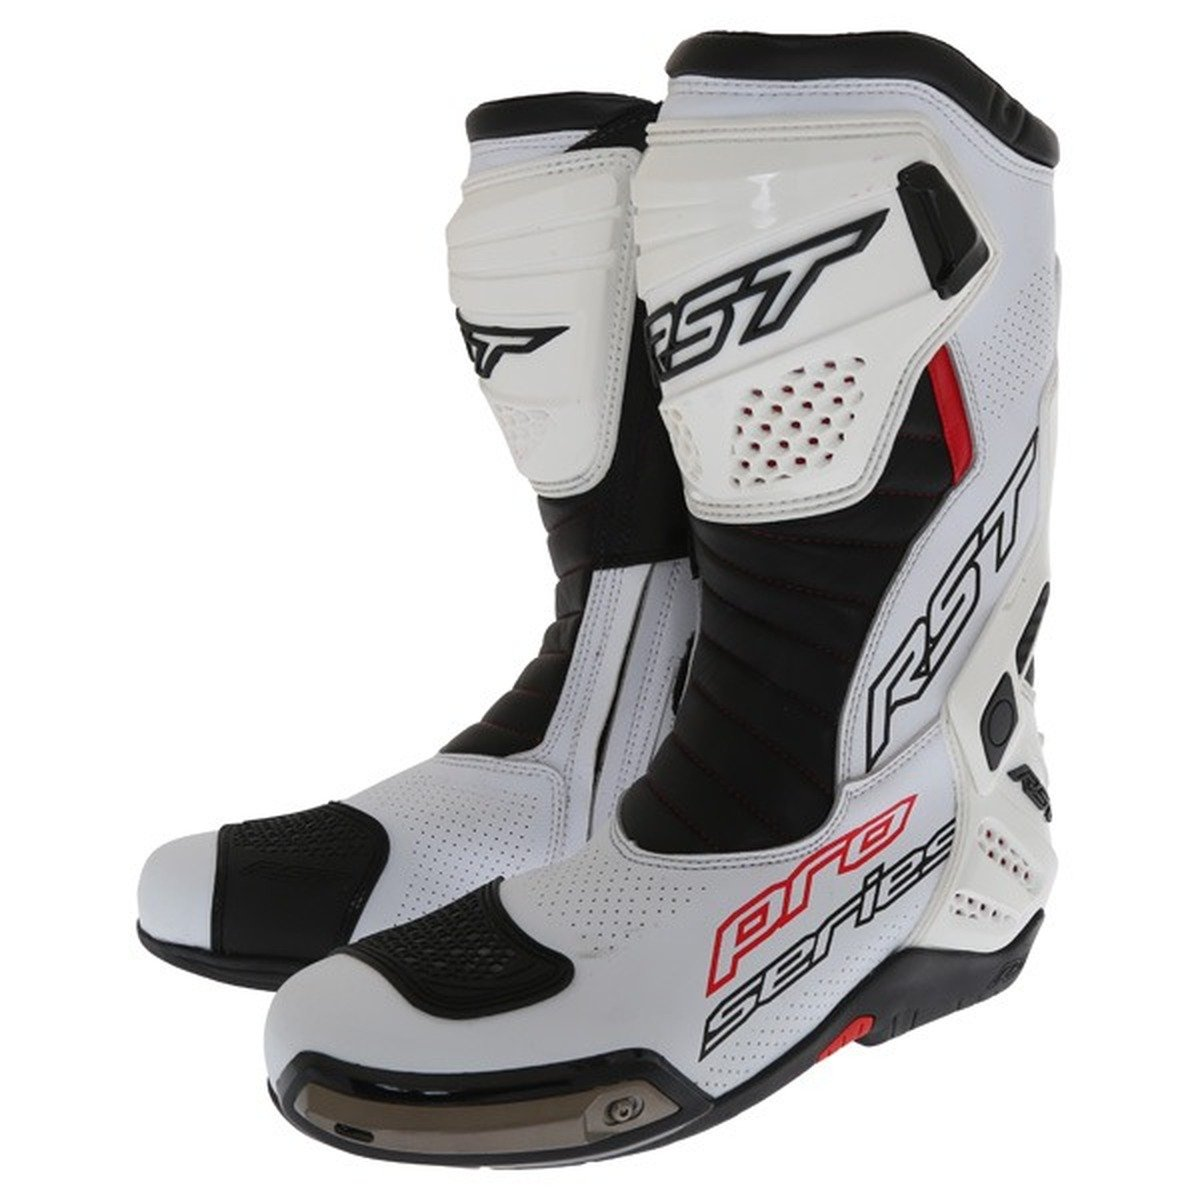 RST Pro Series 1503 Race CE Boots in White